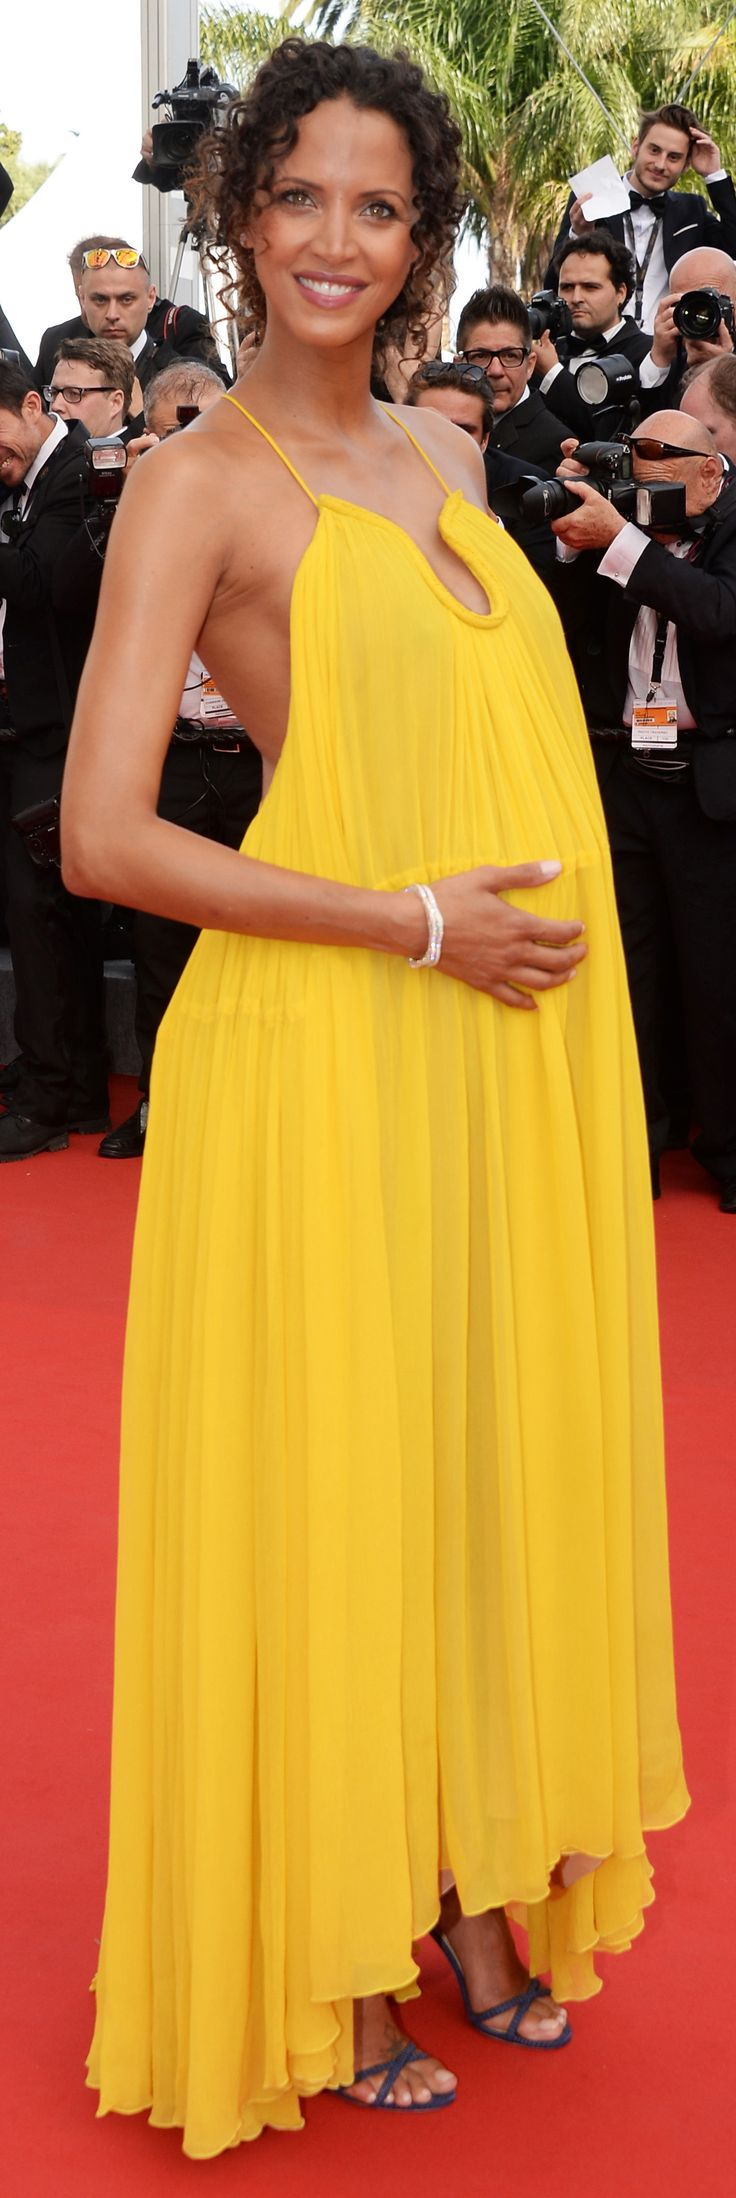 Noémie Lenoir shone bright in our #SS15 flou dress on the red carpet at the film festival in Cannes, May 2015. #chloeGIRLS